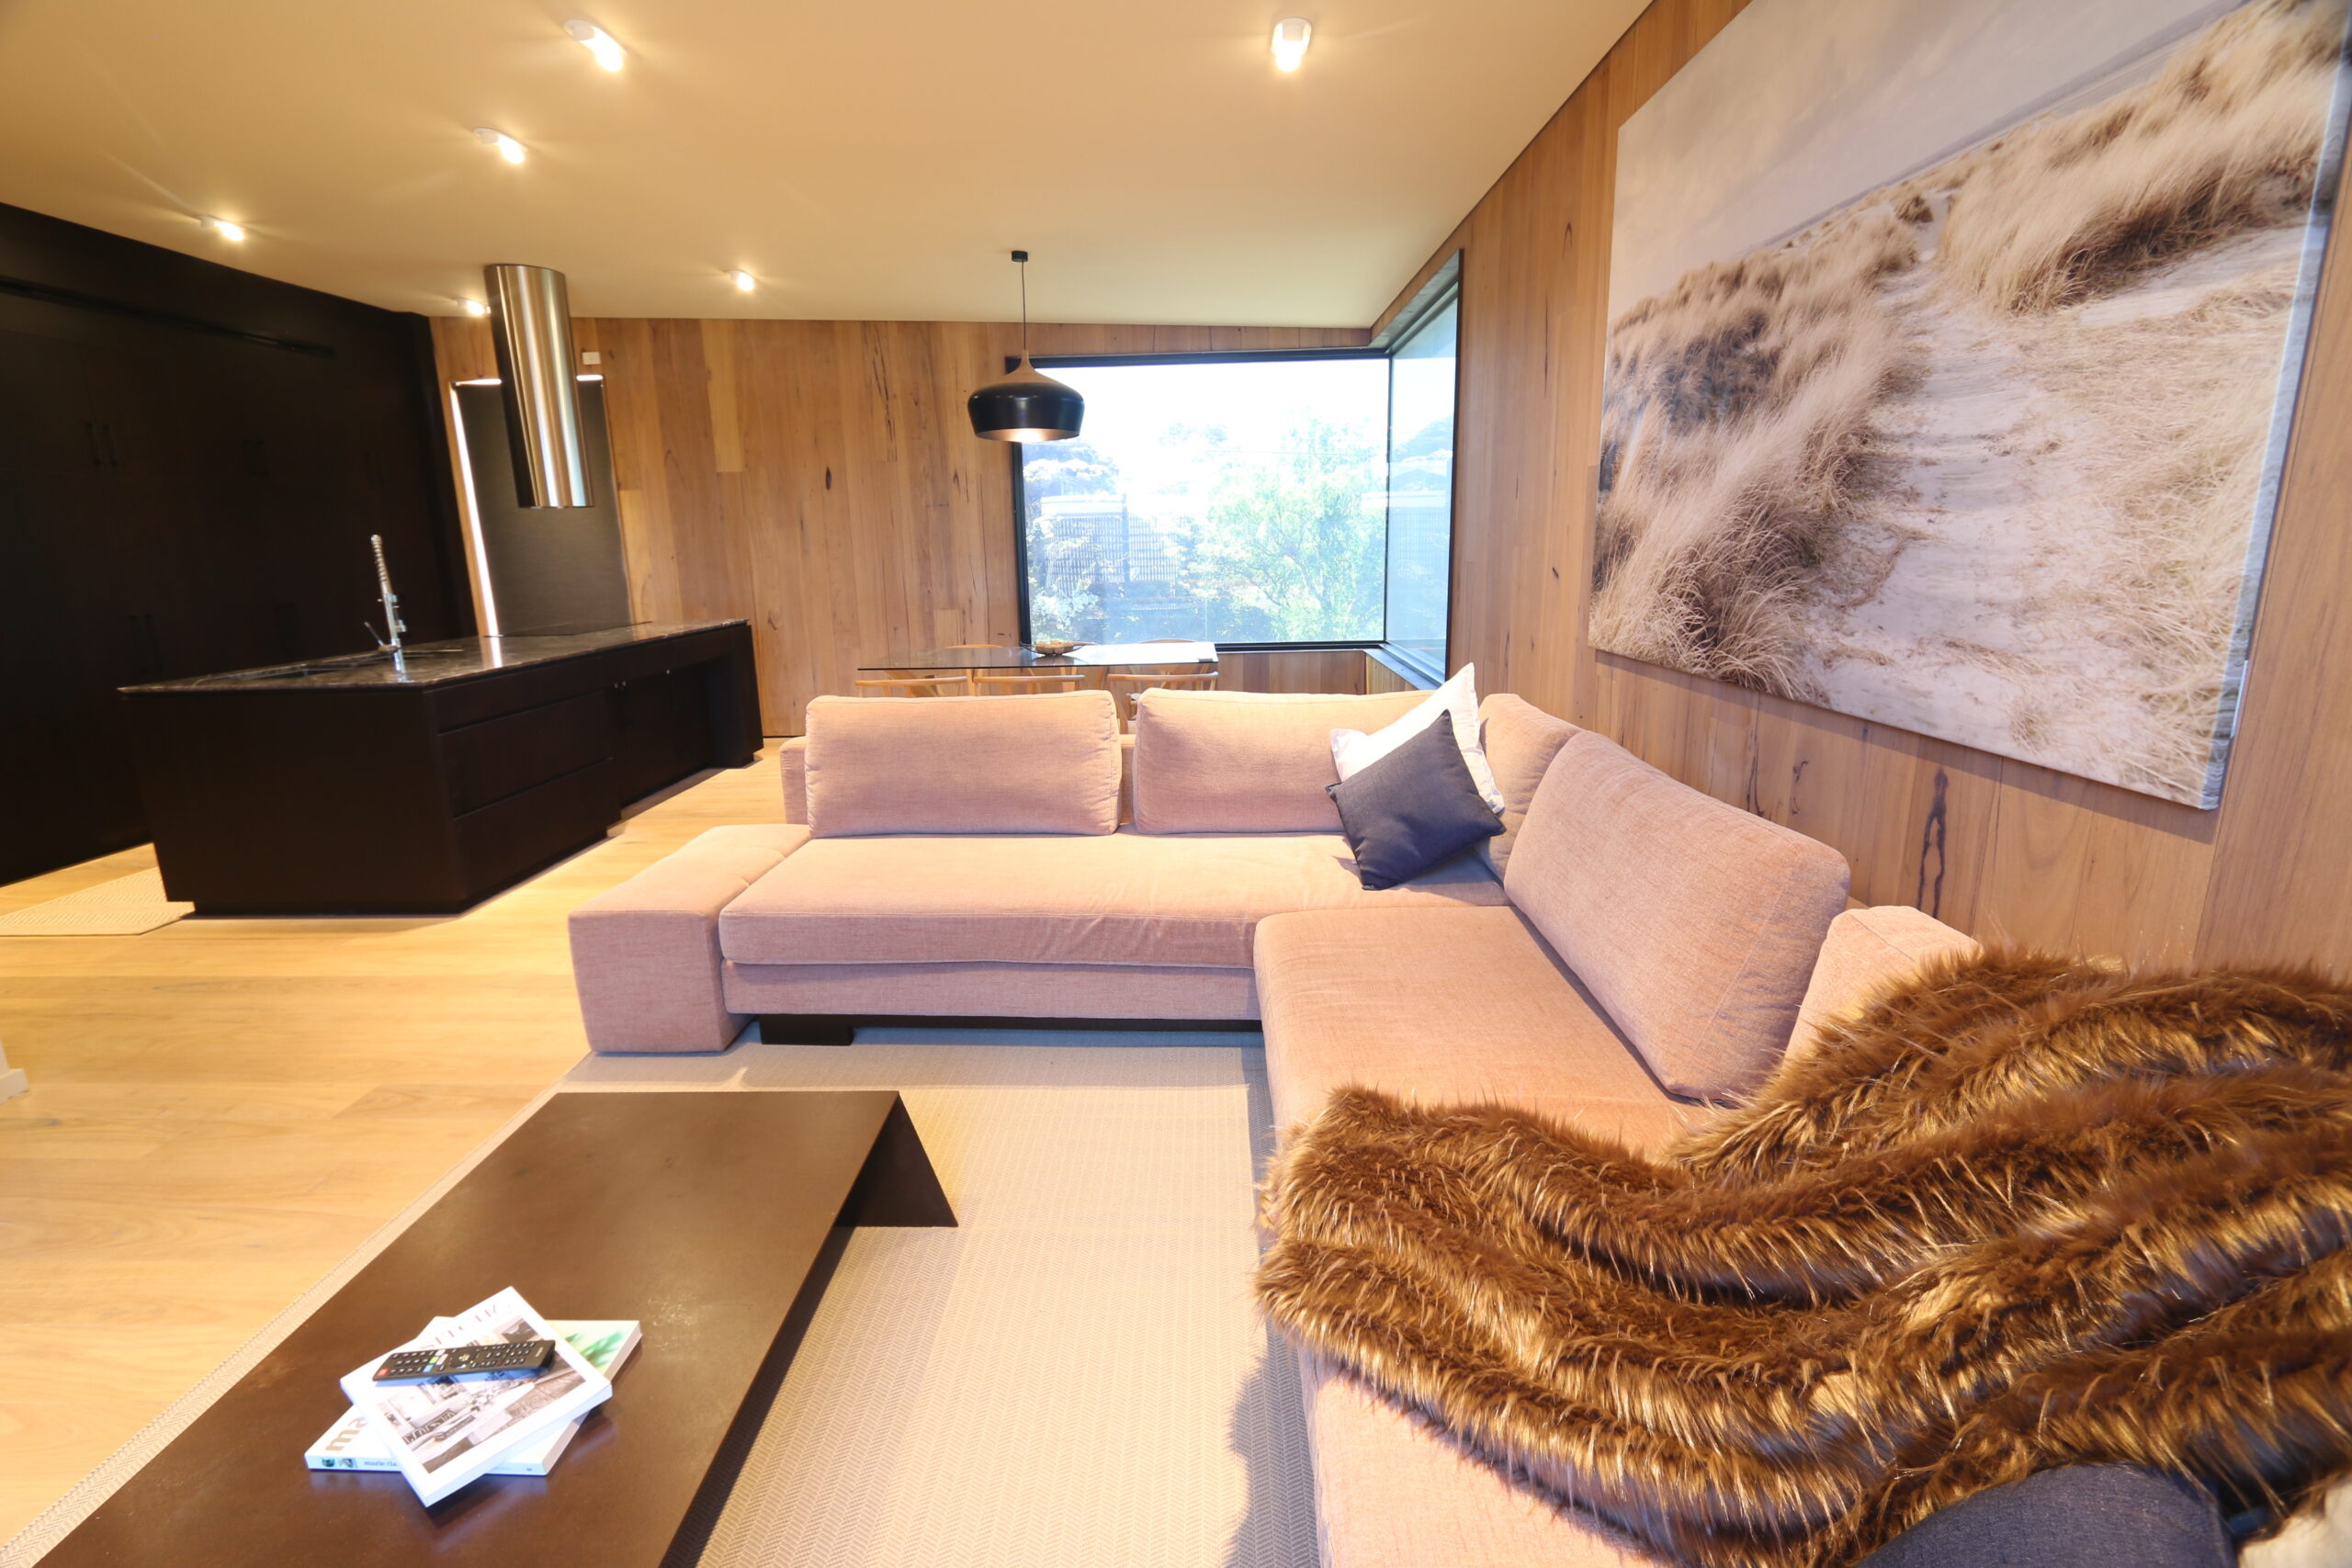 Safety beach holiday rental, comfy dining & lounge zone. Prescott perfection